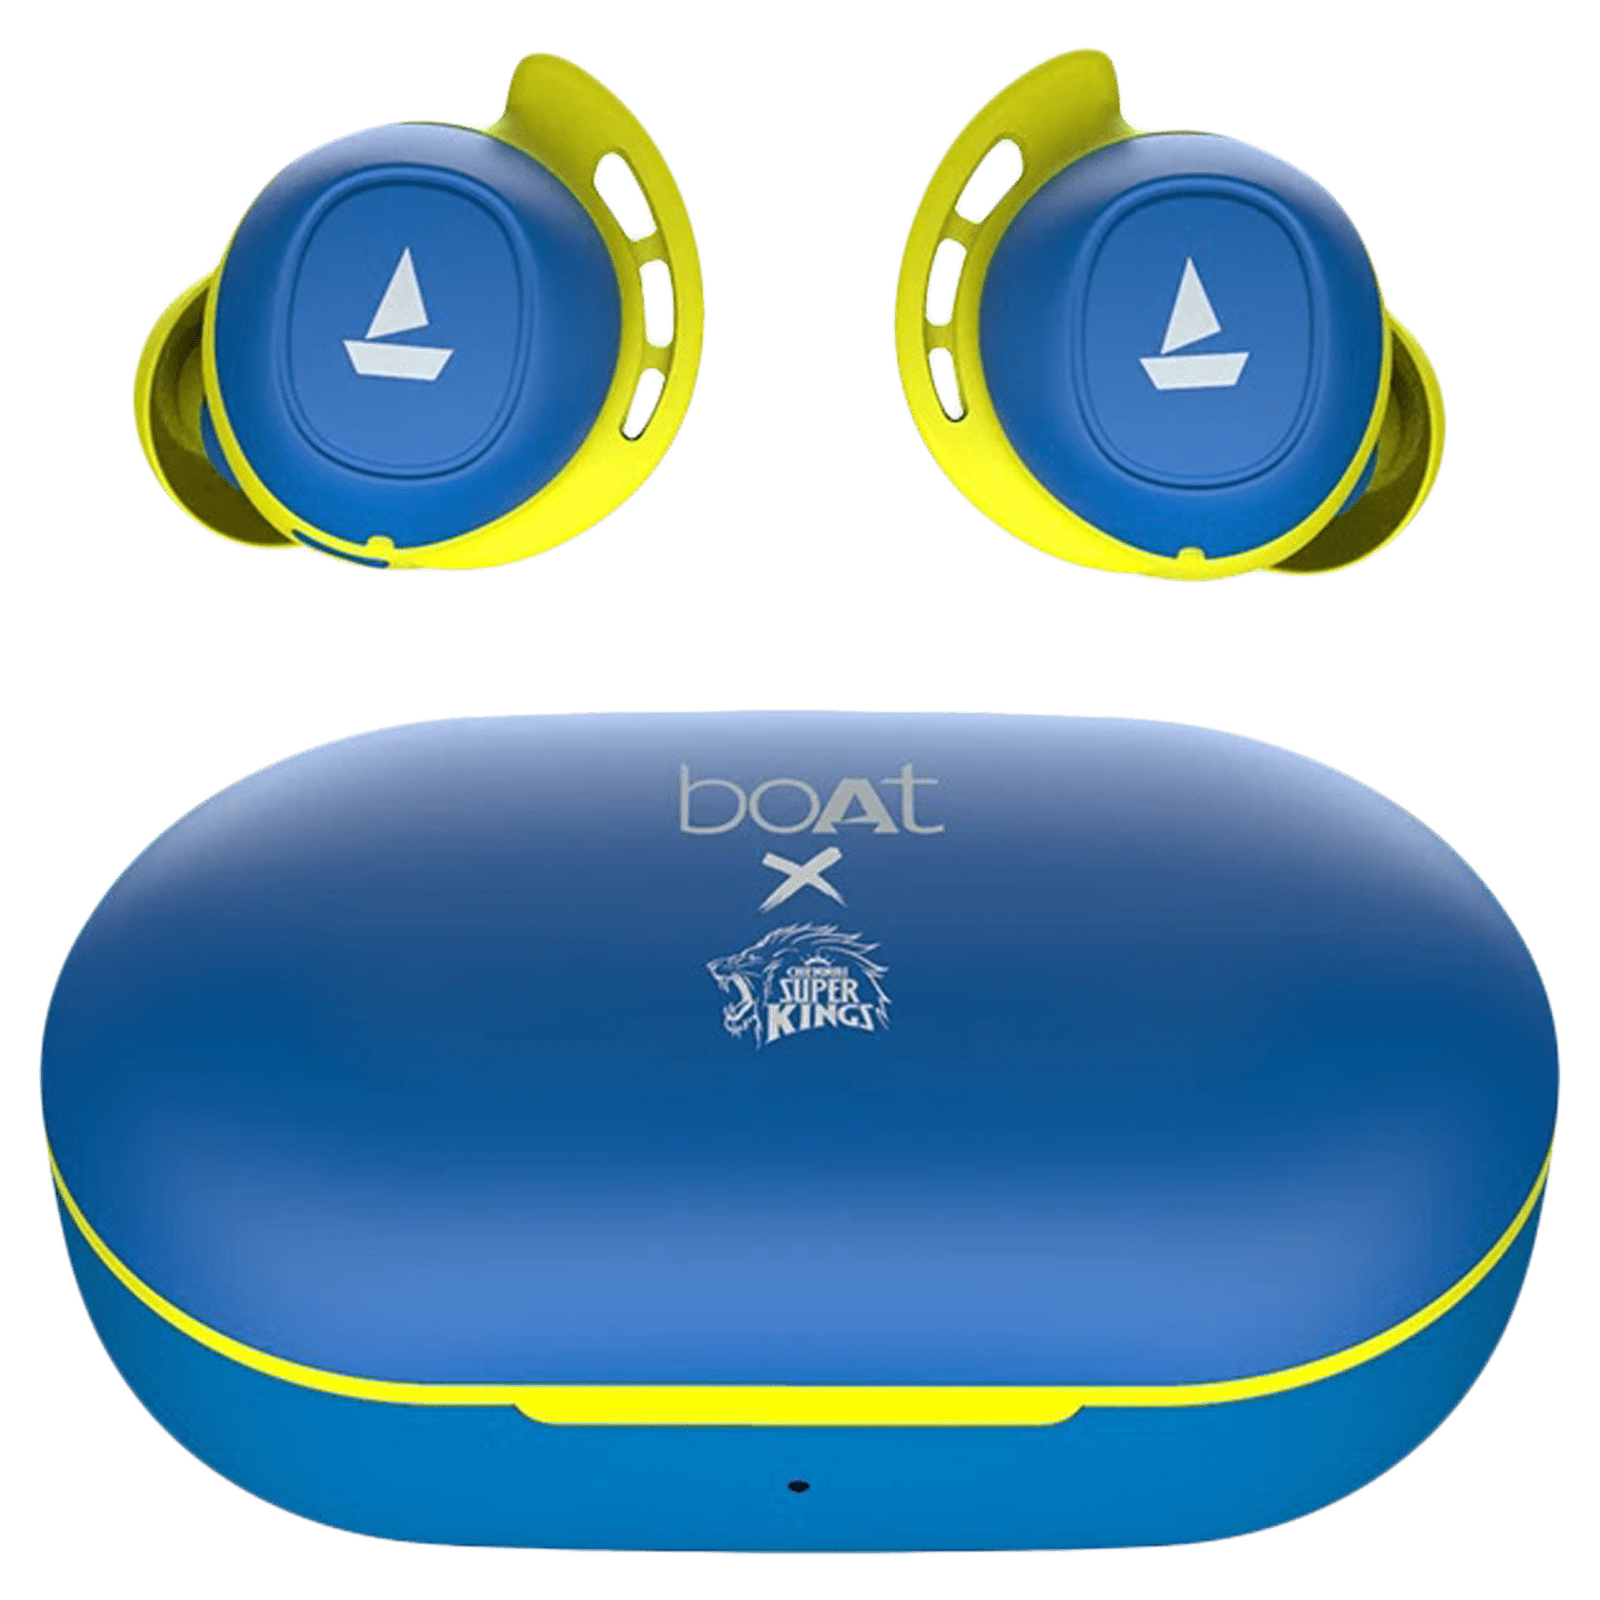 boAt Airdopes 441 CSK Edition In-Ear Truly Wireless Earbuds with Mic (Bluetooth 5.0, Voice Assistant Support, Blue)